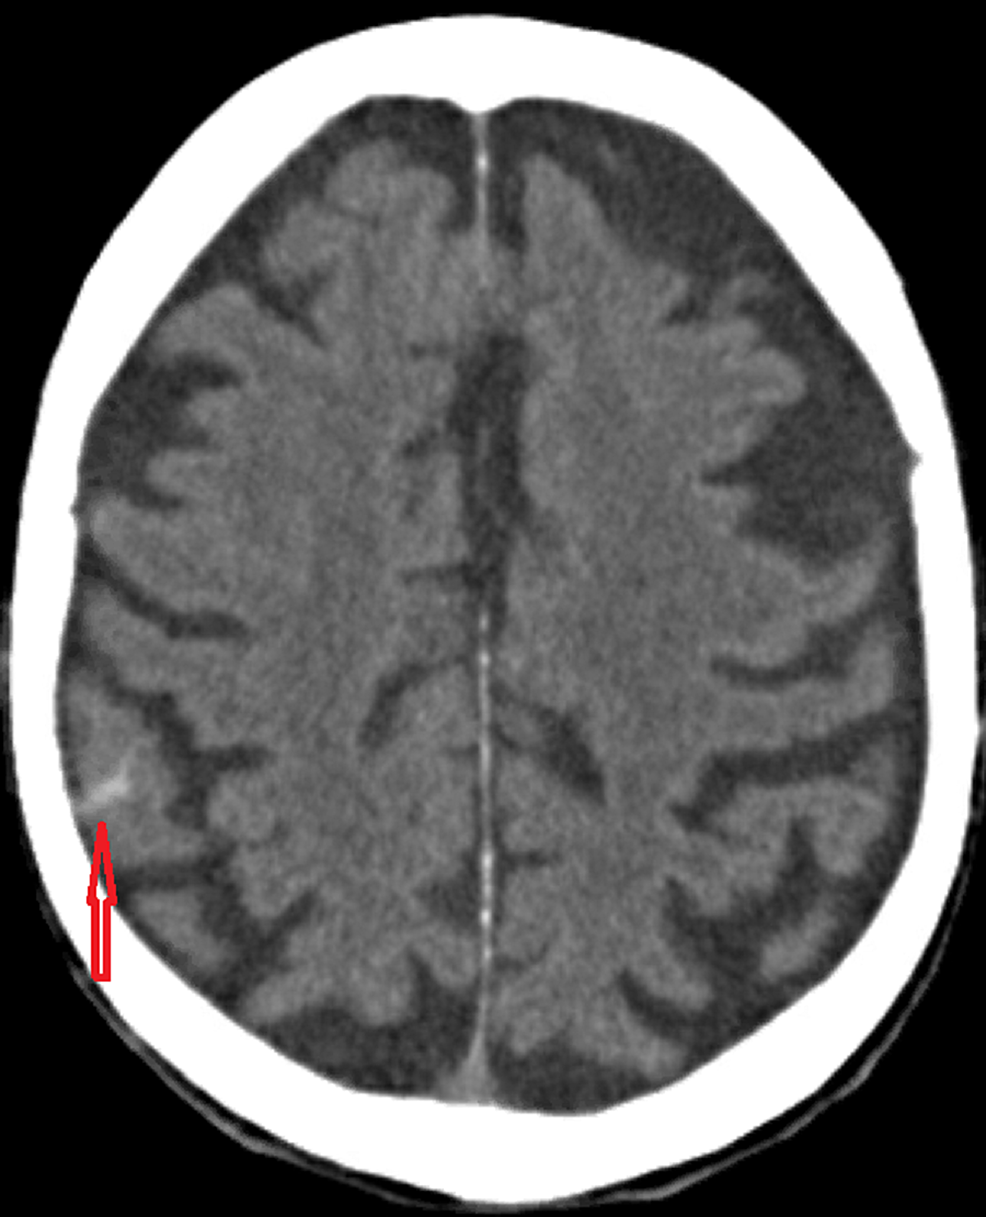 Noncontrast-computed-tomography-scan-of-the-head,-axial-view-showing-small-focus-of-subarachnoid-hemorrhage-(arrow).-No-evidence-of-midline-shift.